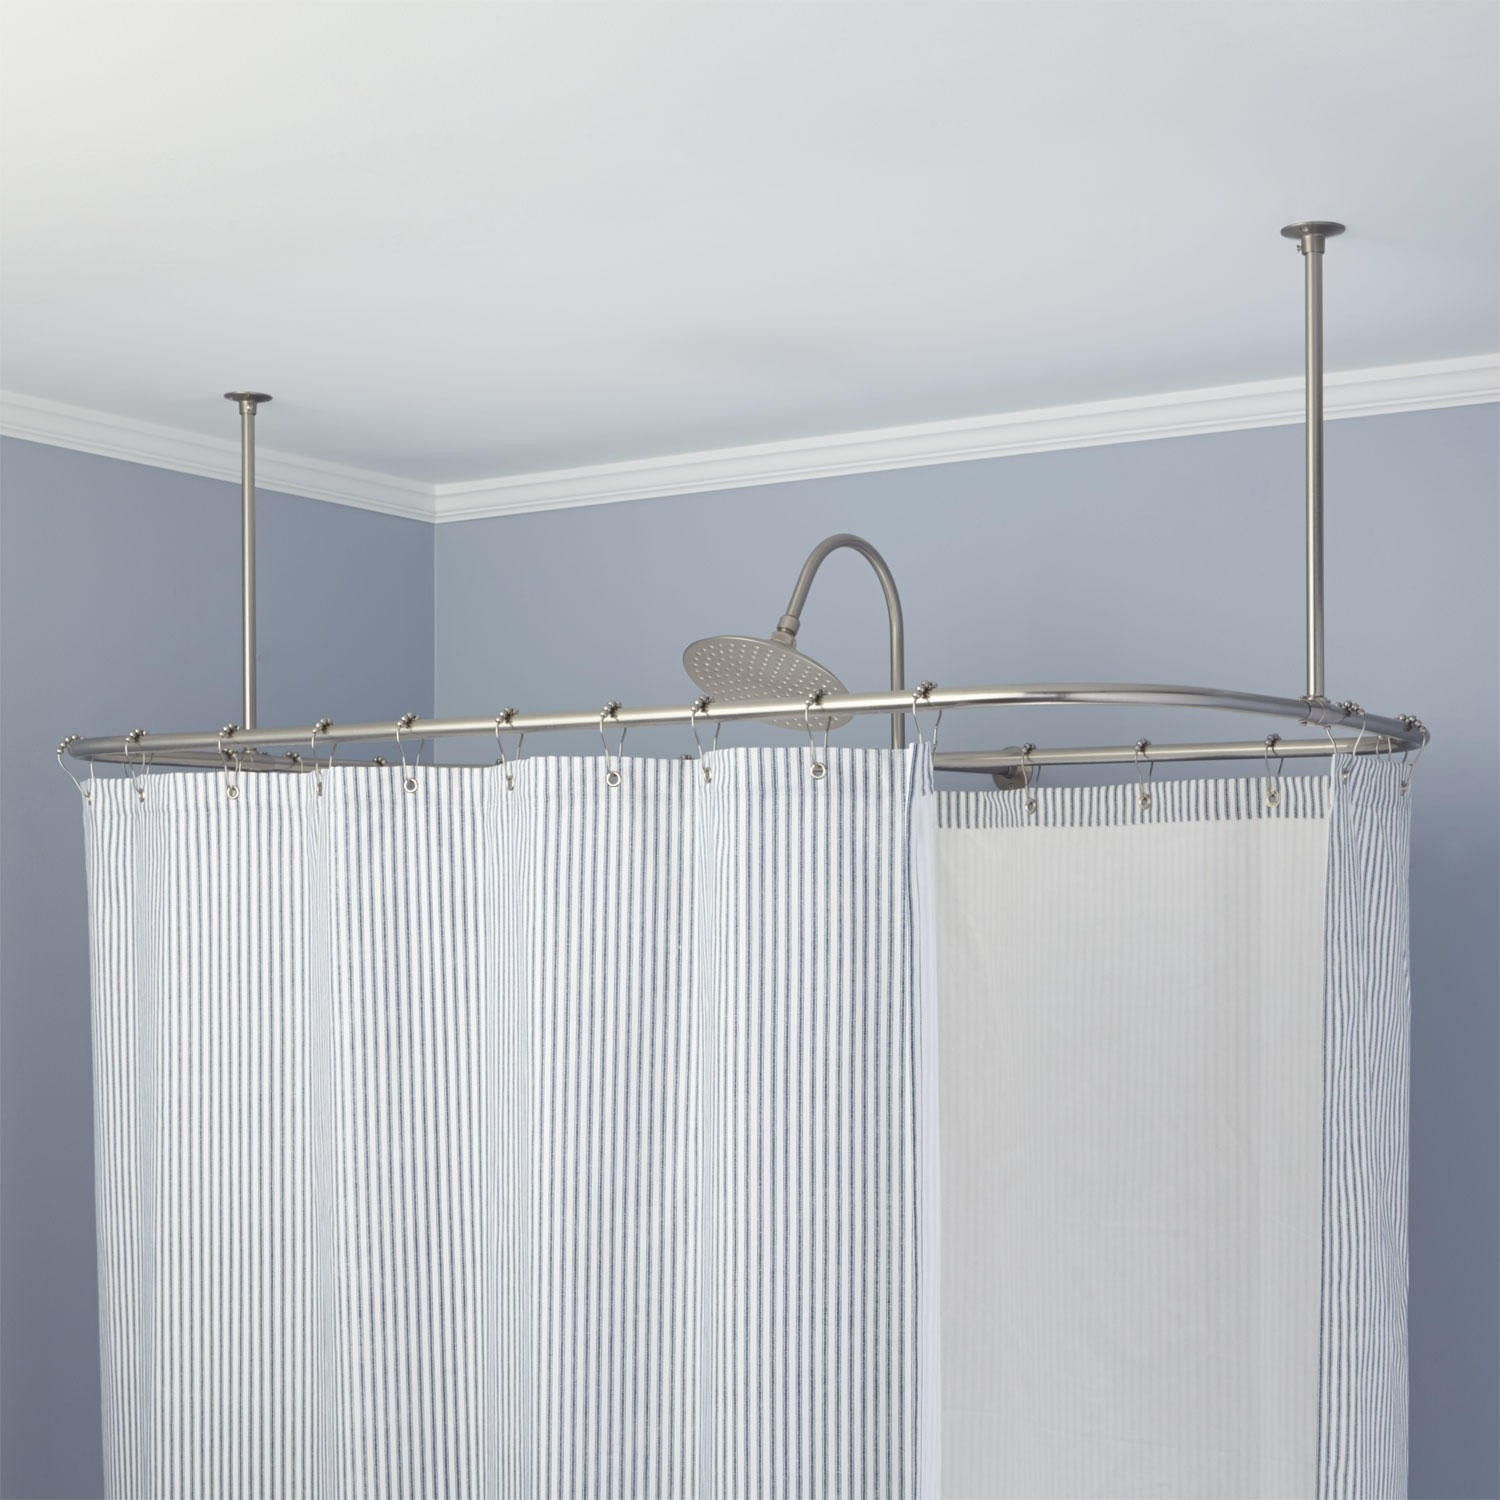 Clawfoot Tub Shower Curtain Rods Signature Hardware Throughout Claw Tub Shower Curtains (Image 15 of 25)